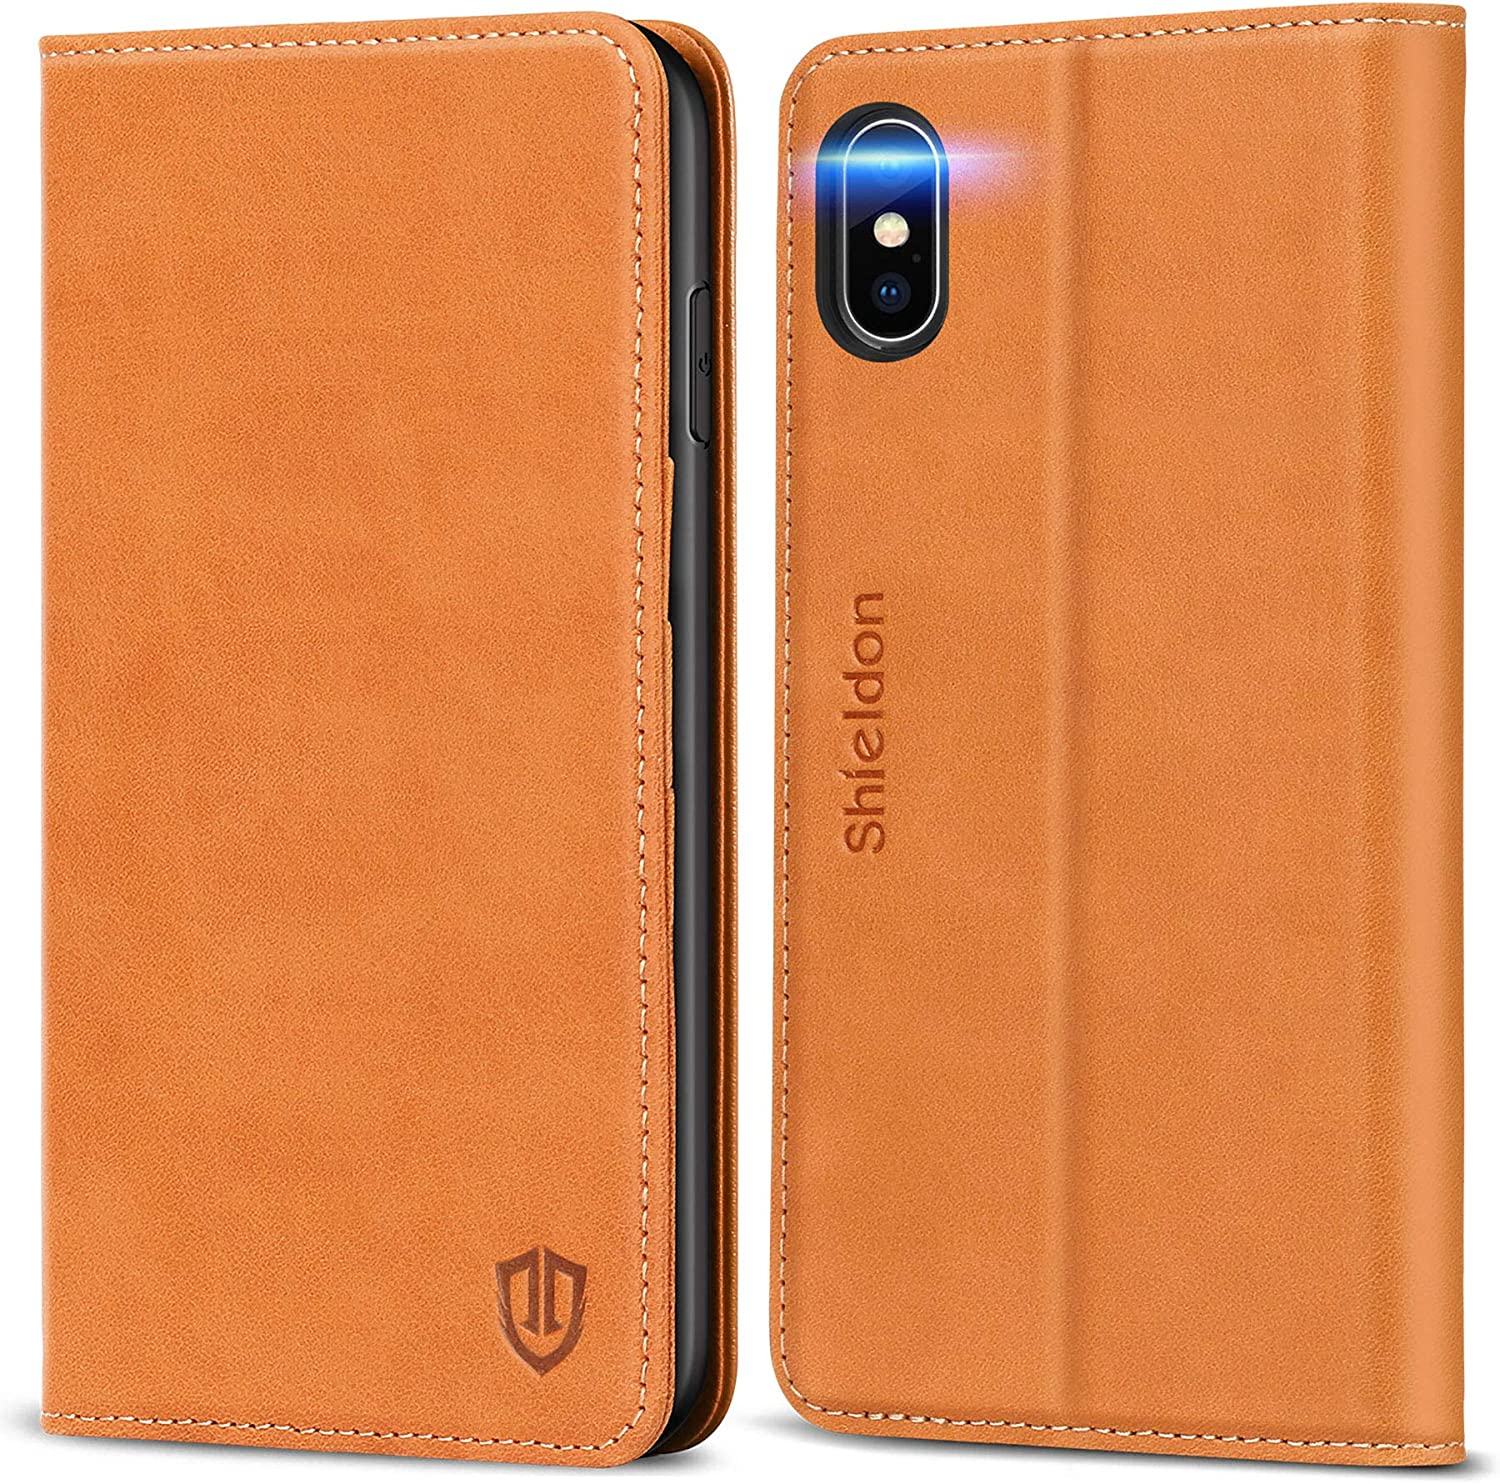 SHIELDON iPhone Xs Max Case, Genuine Leather iPhone Xs Max Wallet Case Support Auto Wake/Sleep RFID Protective Card Holder Folio Magnetic Stand Cover Compatible with iPhone Xs Max (6.5